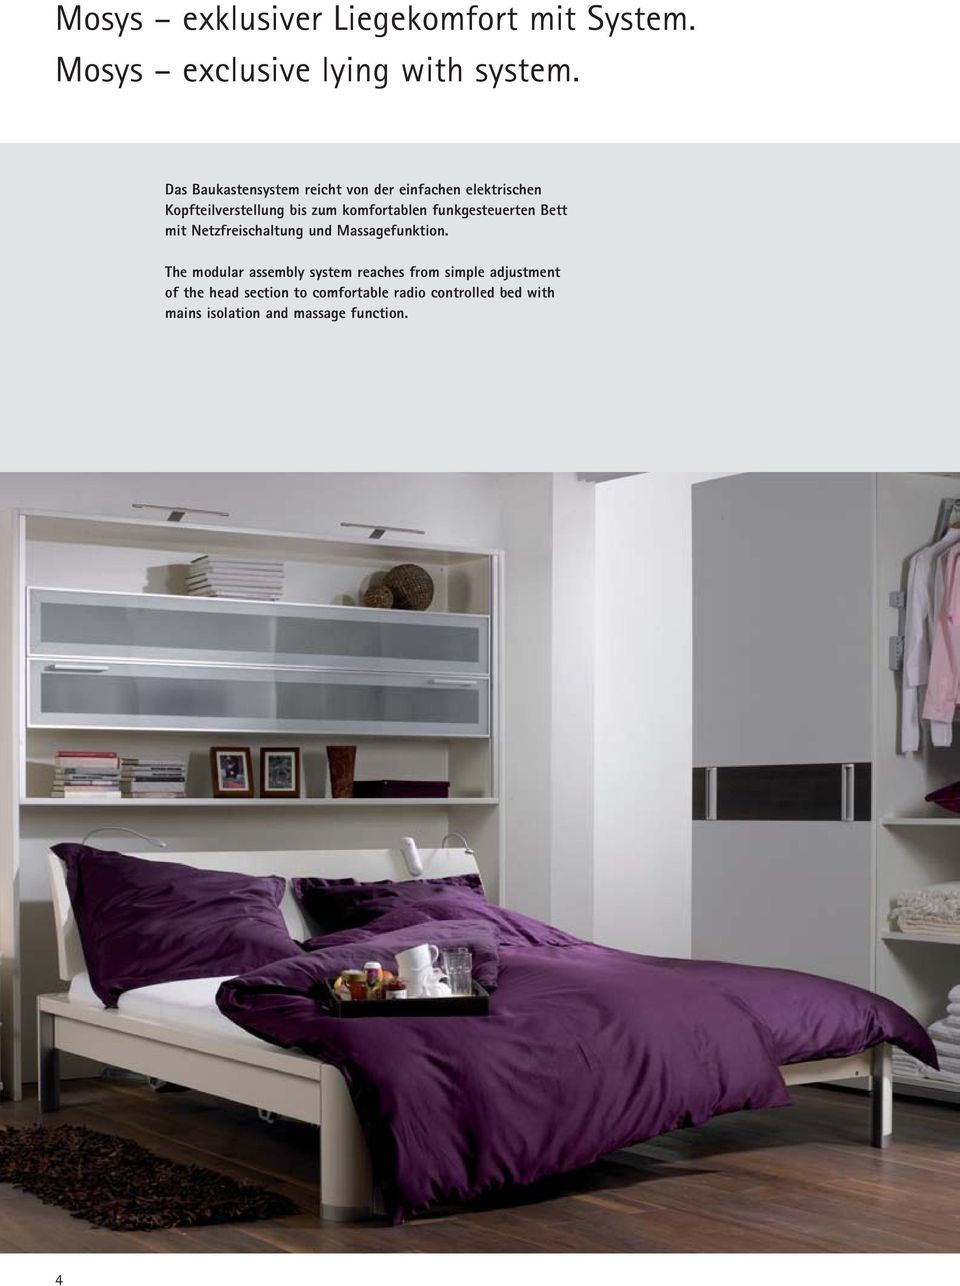 das modulare baukasten system f r ihr bett mosys the modular system for your bed mosys pdf. Black Bedroom Furniture Sets. Home Design Ideas